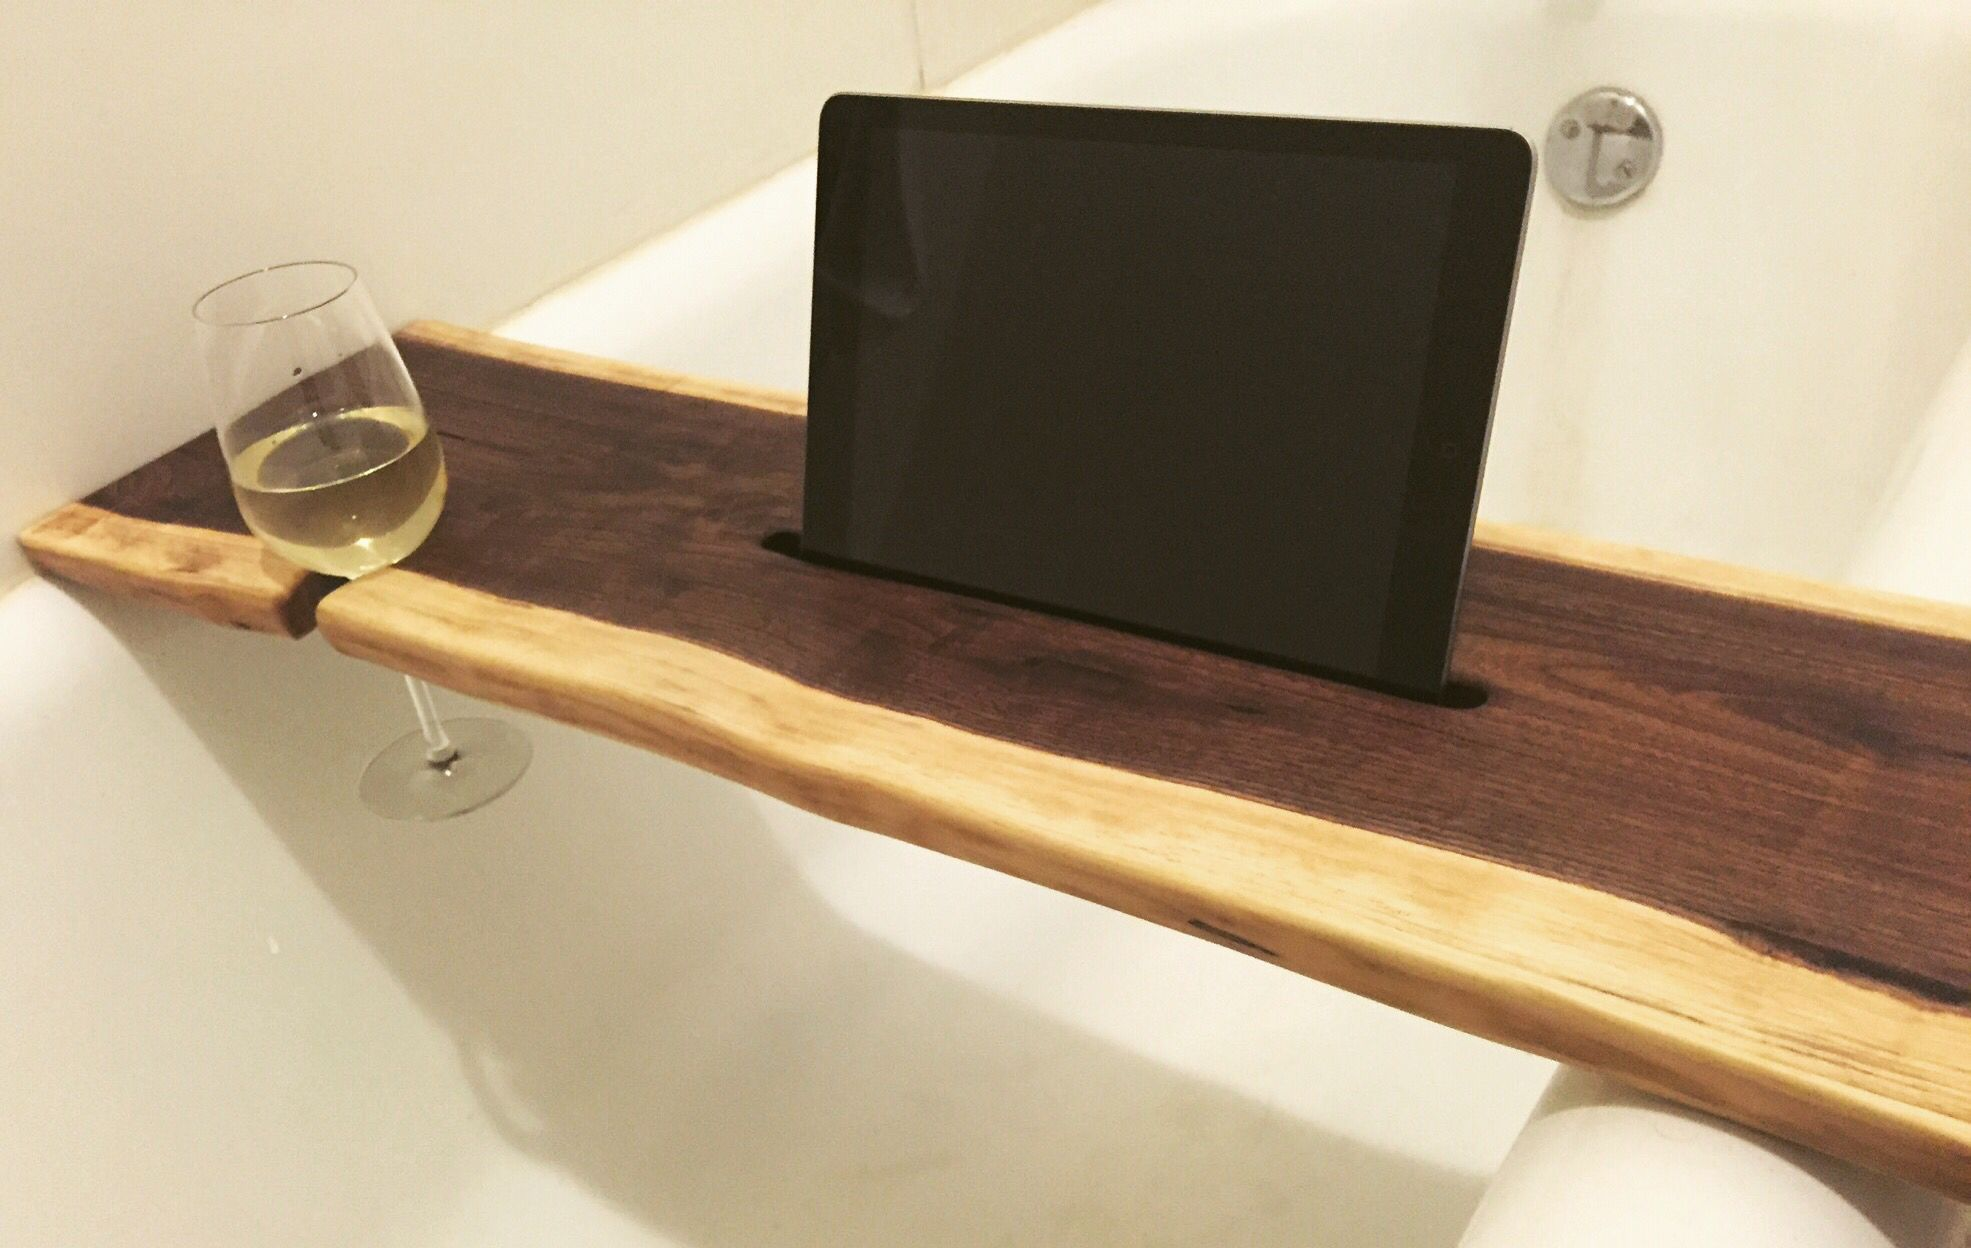 Live Edge Walnut Wood Bath Tray Bath Caddy With Tablet Ipad Holder And Wine Holders By 56 Woodworks Perfect For